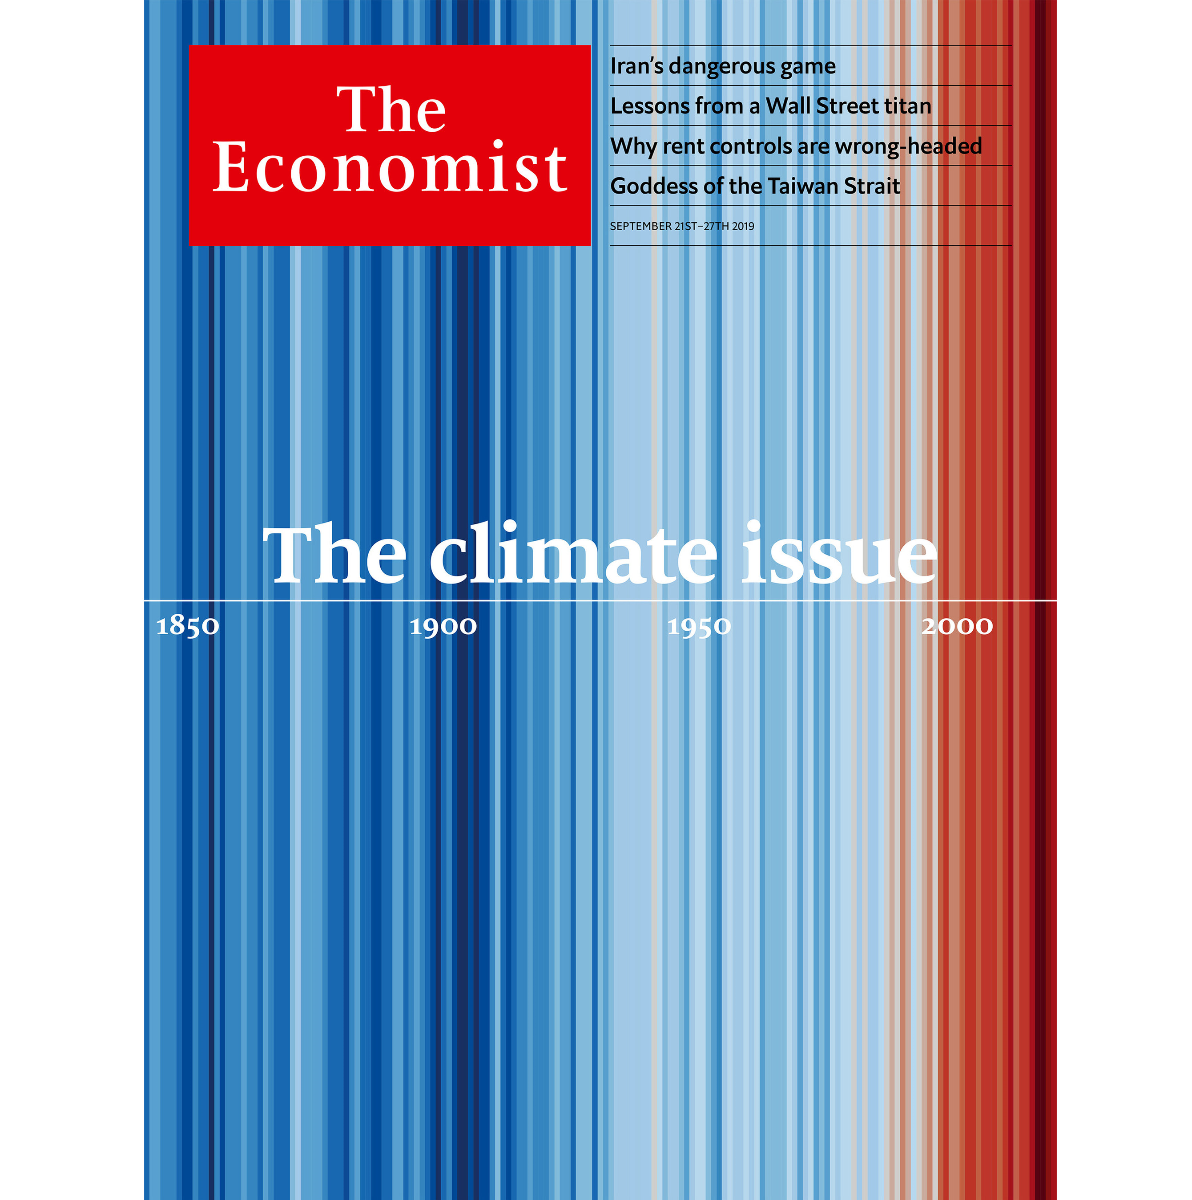 The Economist on Climate